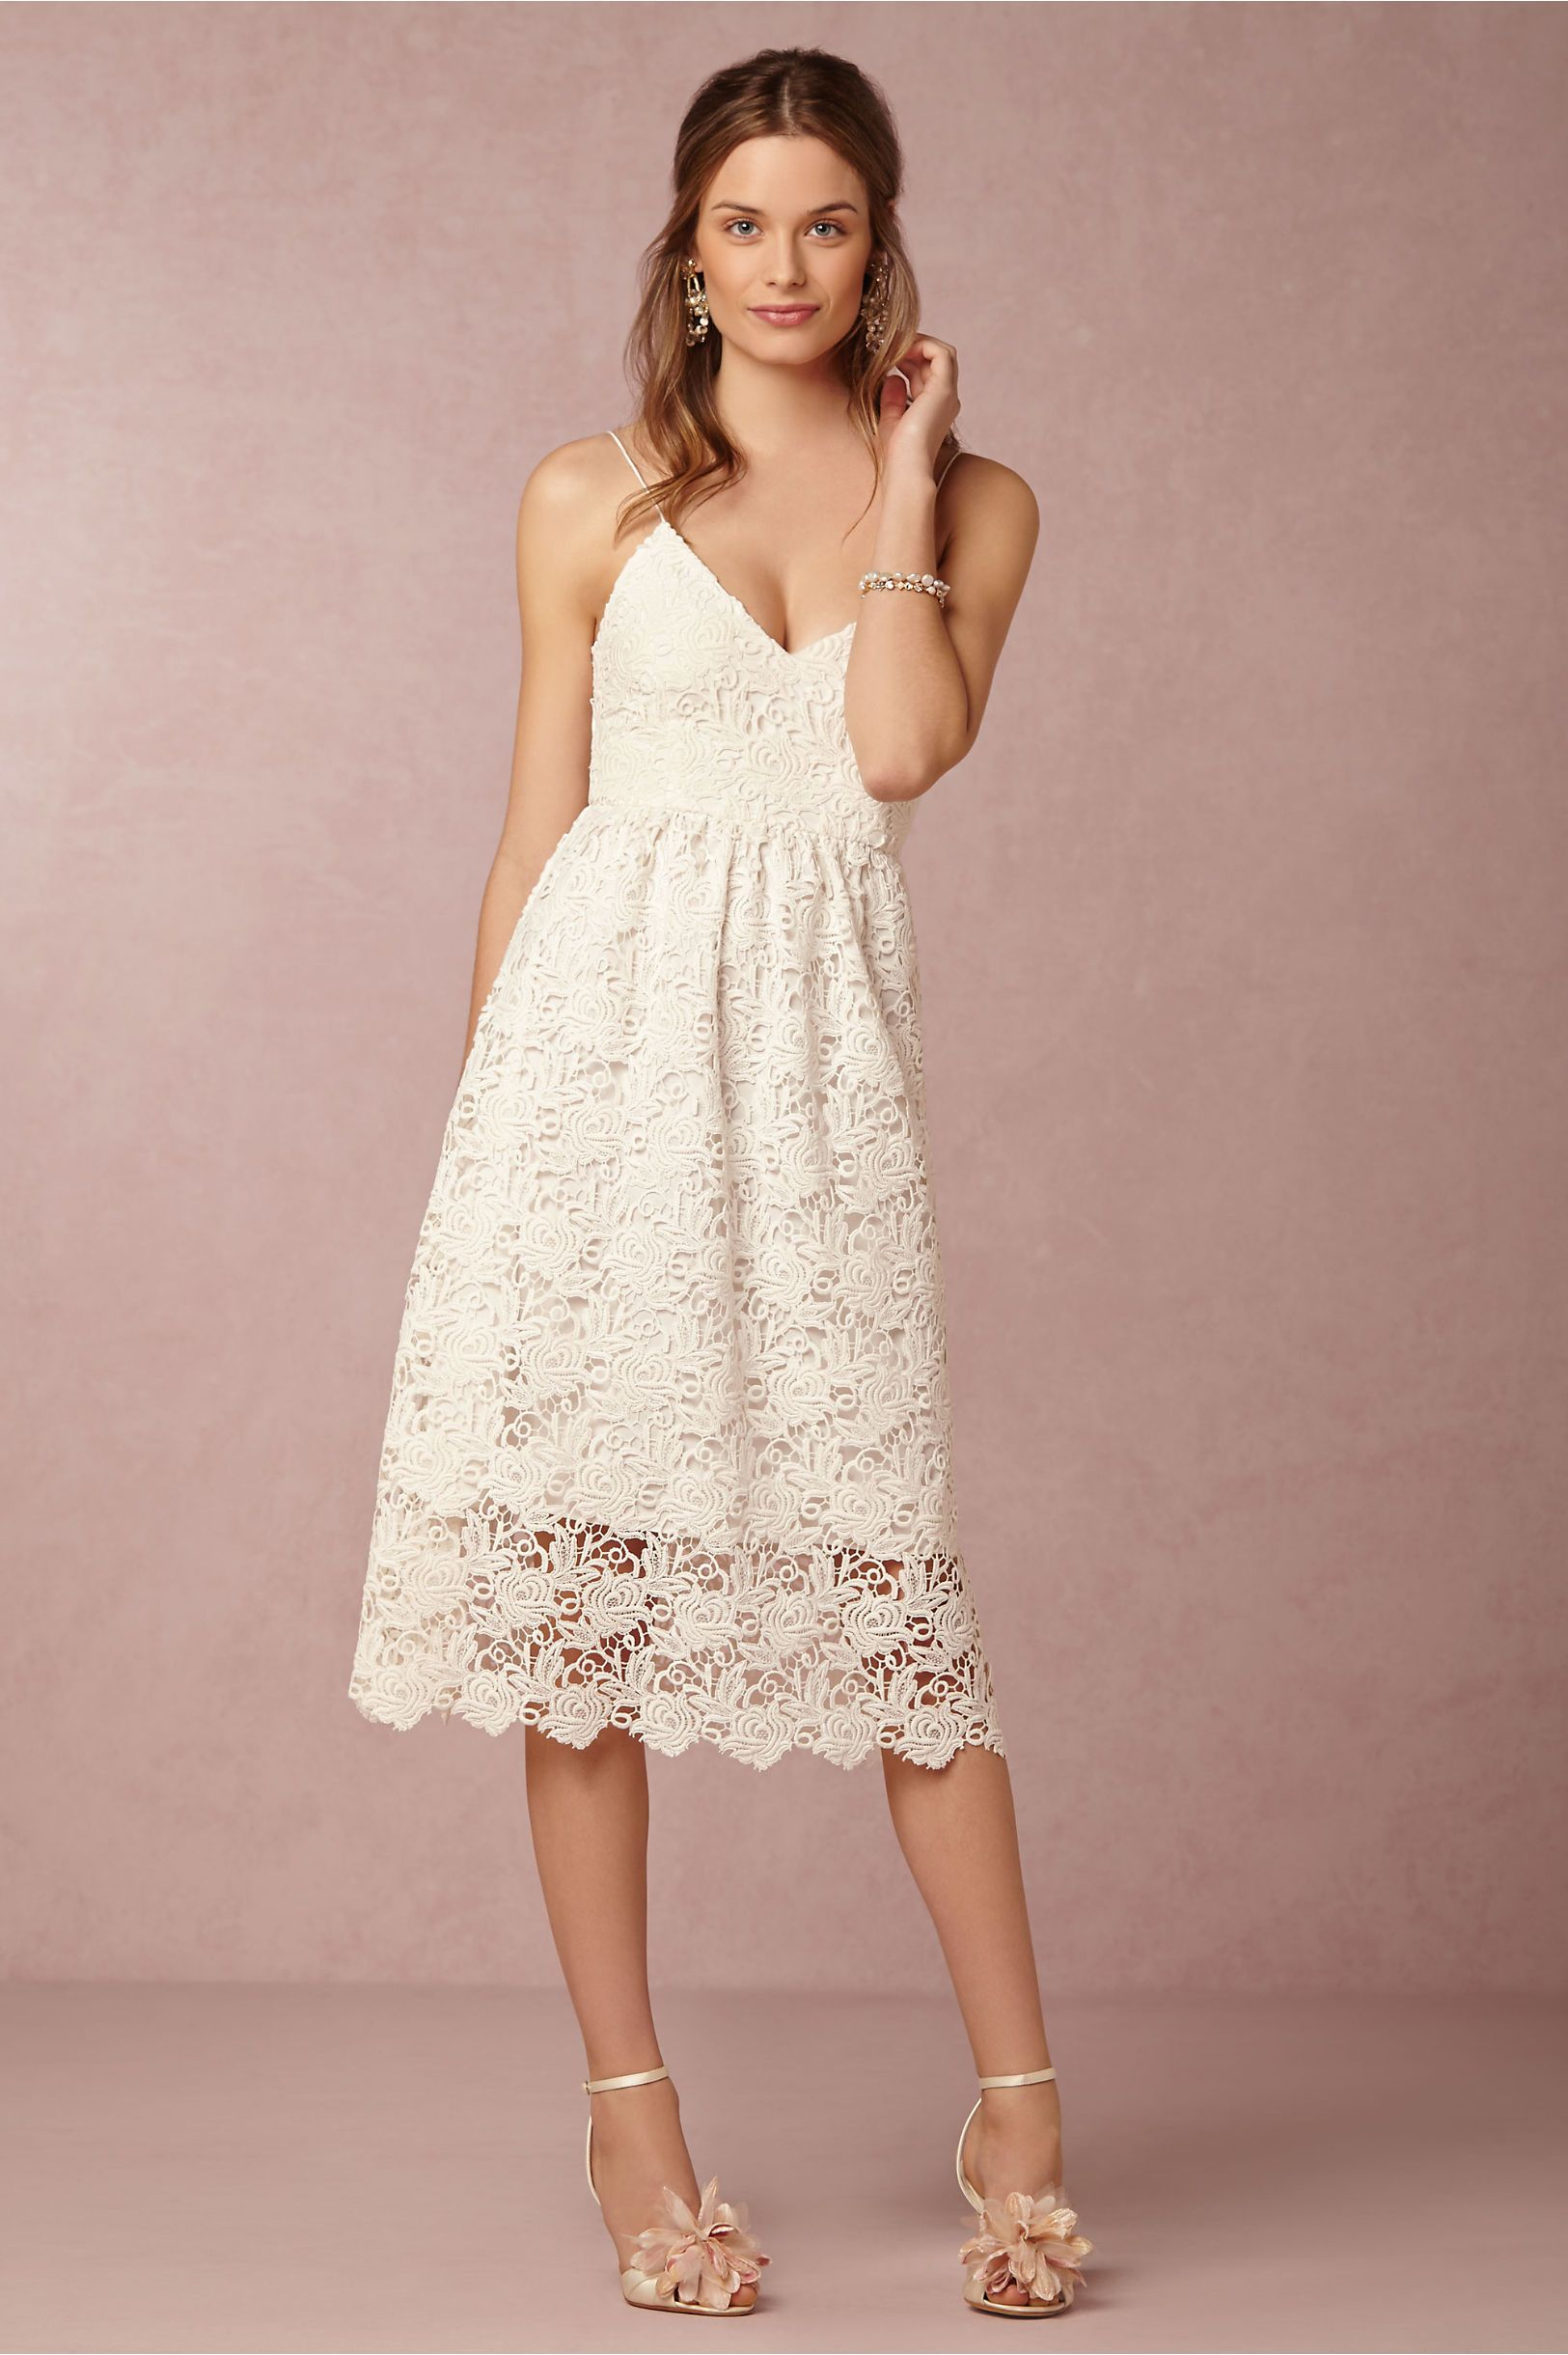 Fabulous Bridal Shower Dresses to Wear if You\'re the Bride ...